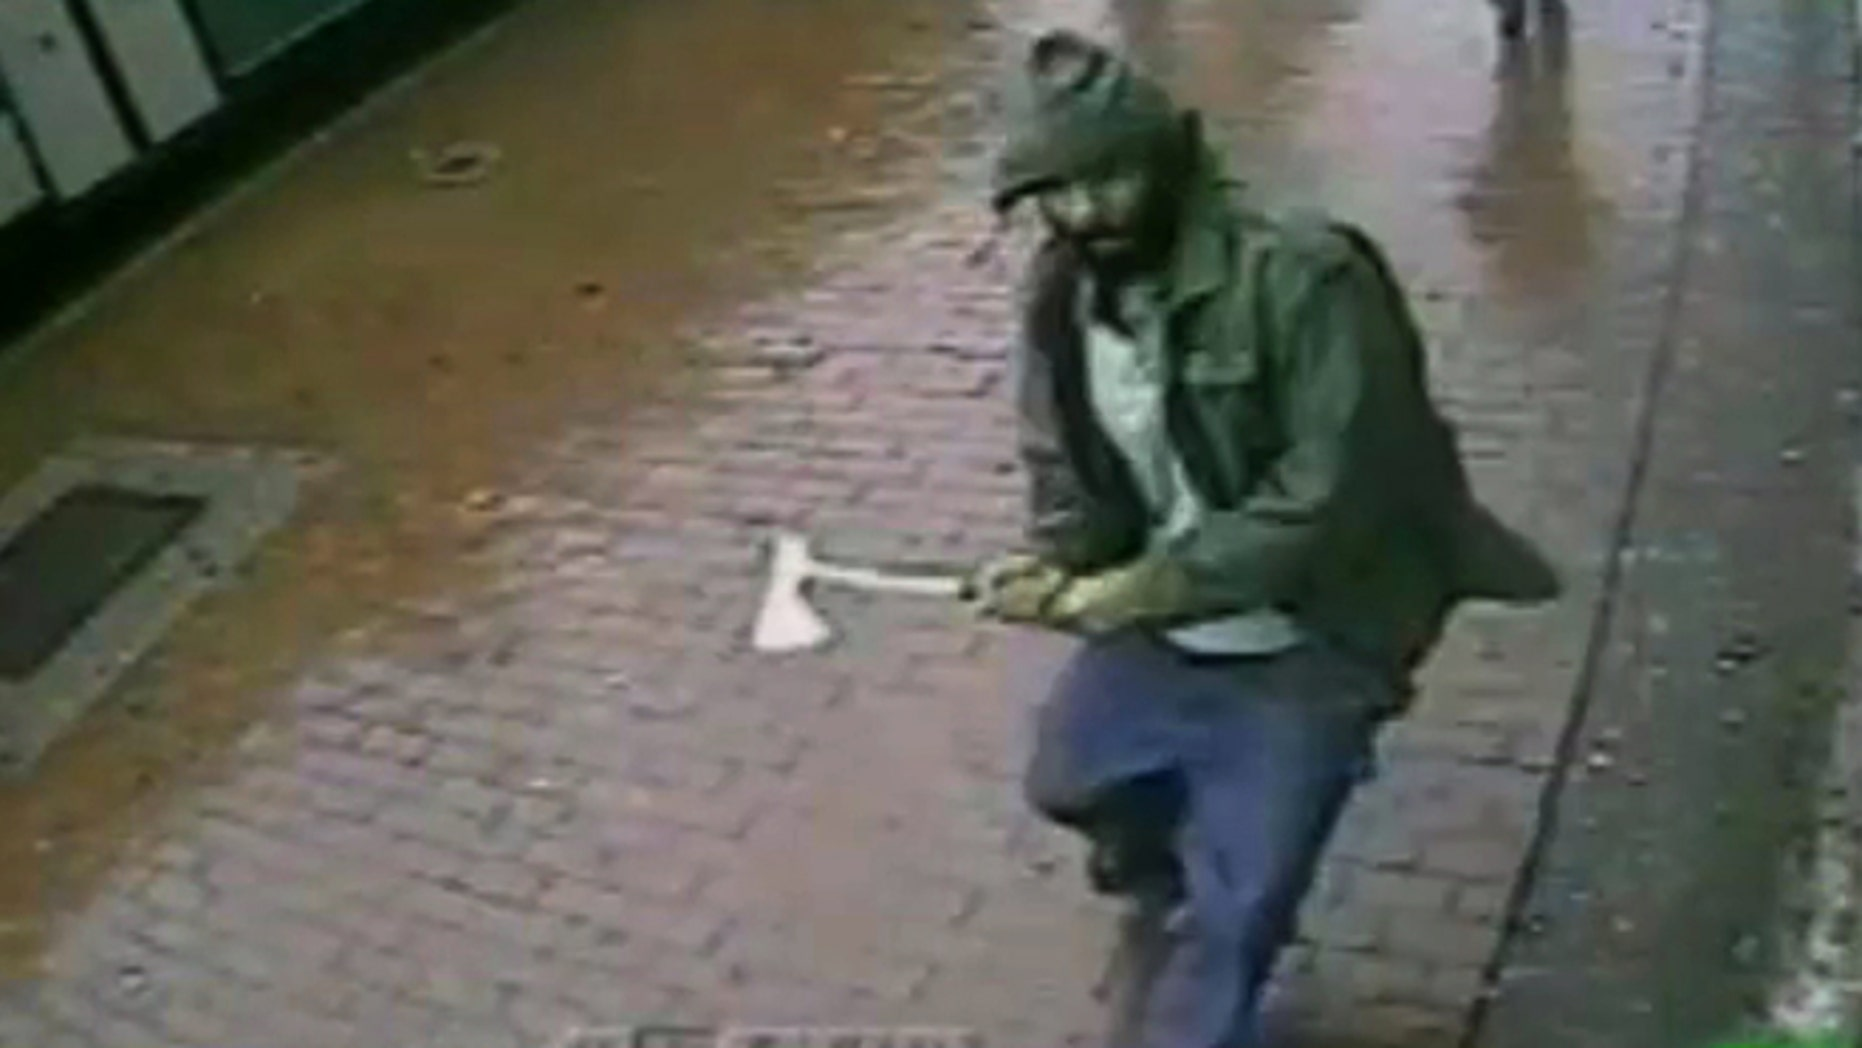 Oct. 23, 2014: In this frame grab taken from video provided by the New York Police Department, an unidentified man approaches New York City police officers with a hatchet